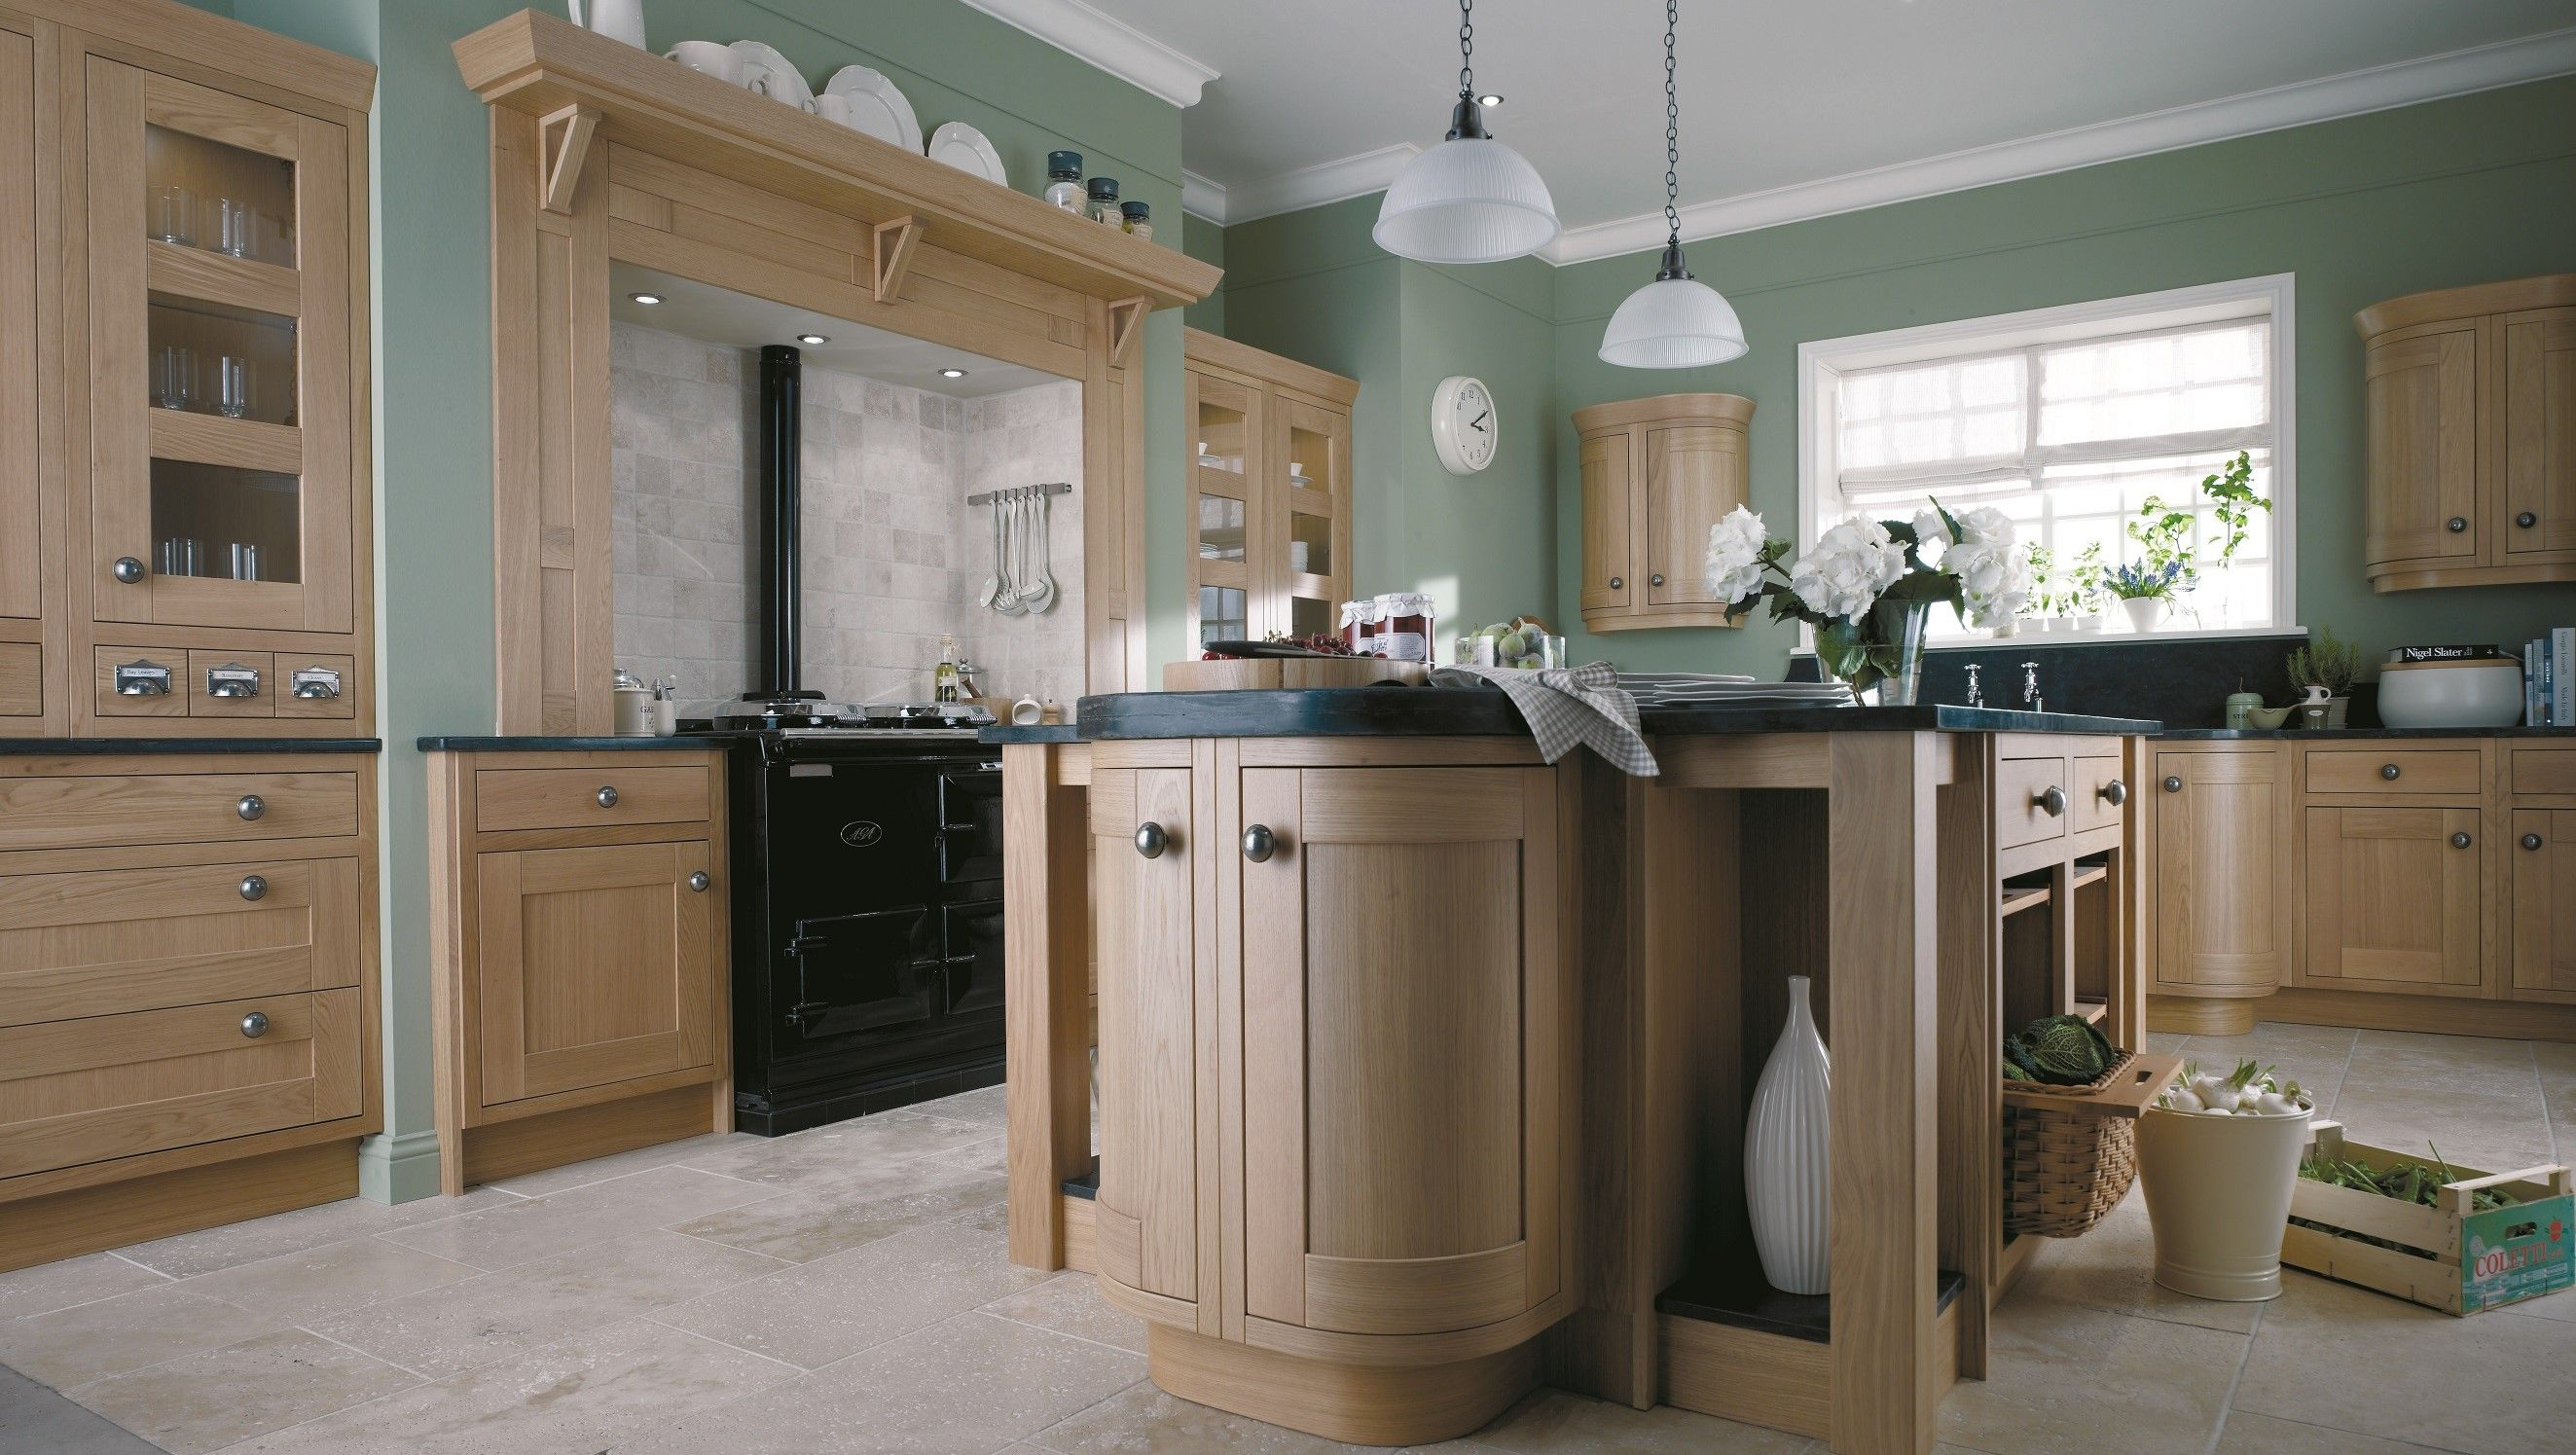 Milton 0022 Hpm New  Kitchen Ideas  Pinterest  Newcastle Inspiration 2 Wall Kitchen Designs Design Inspiration